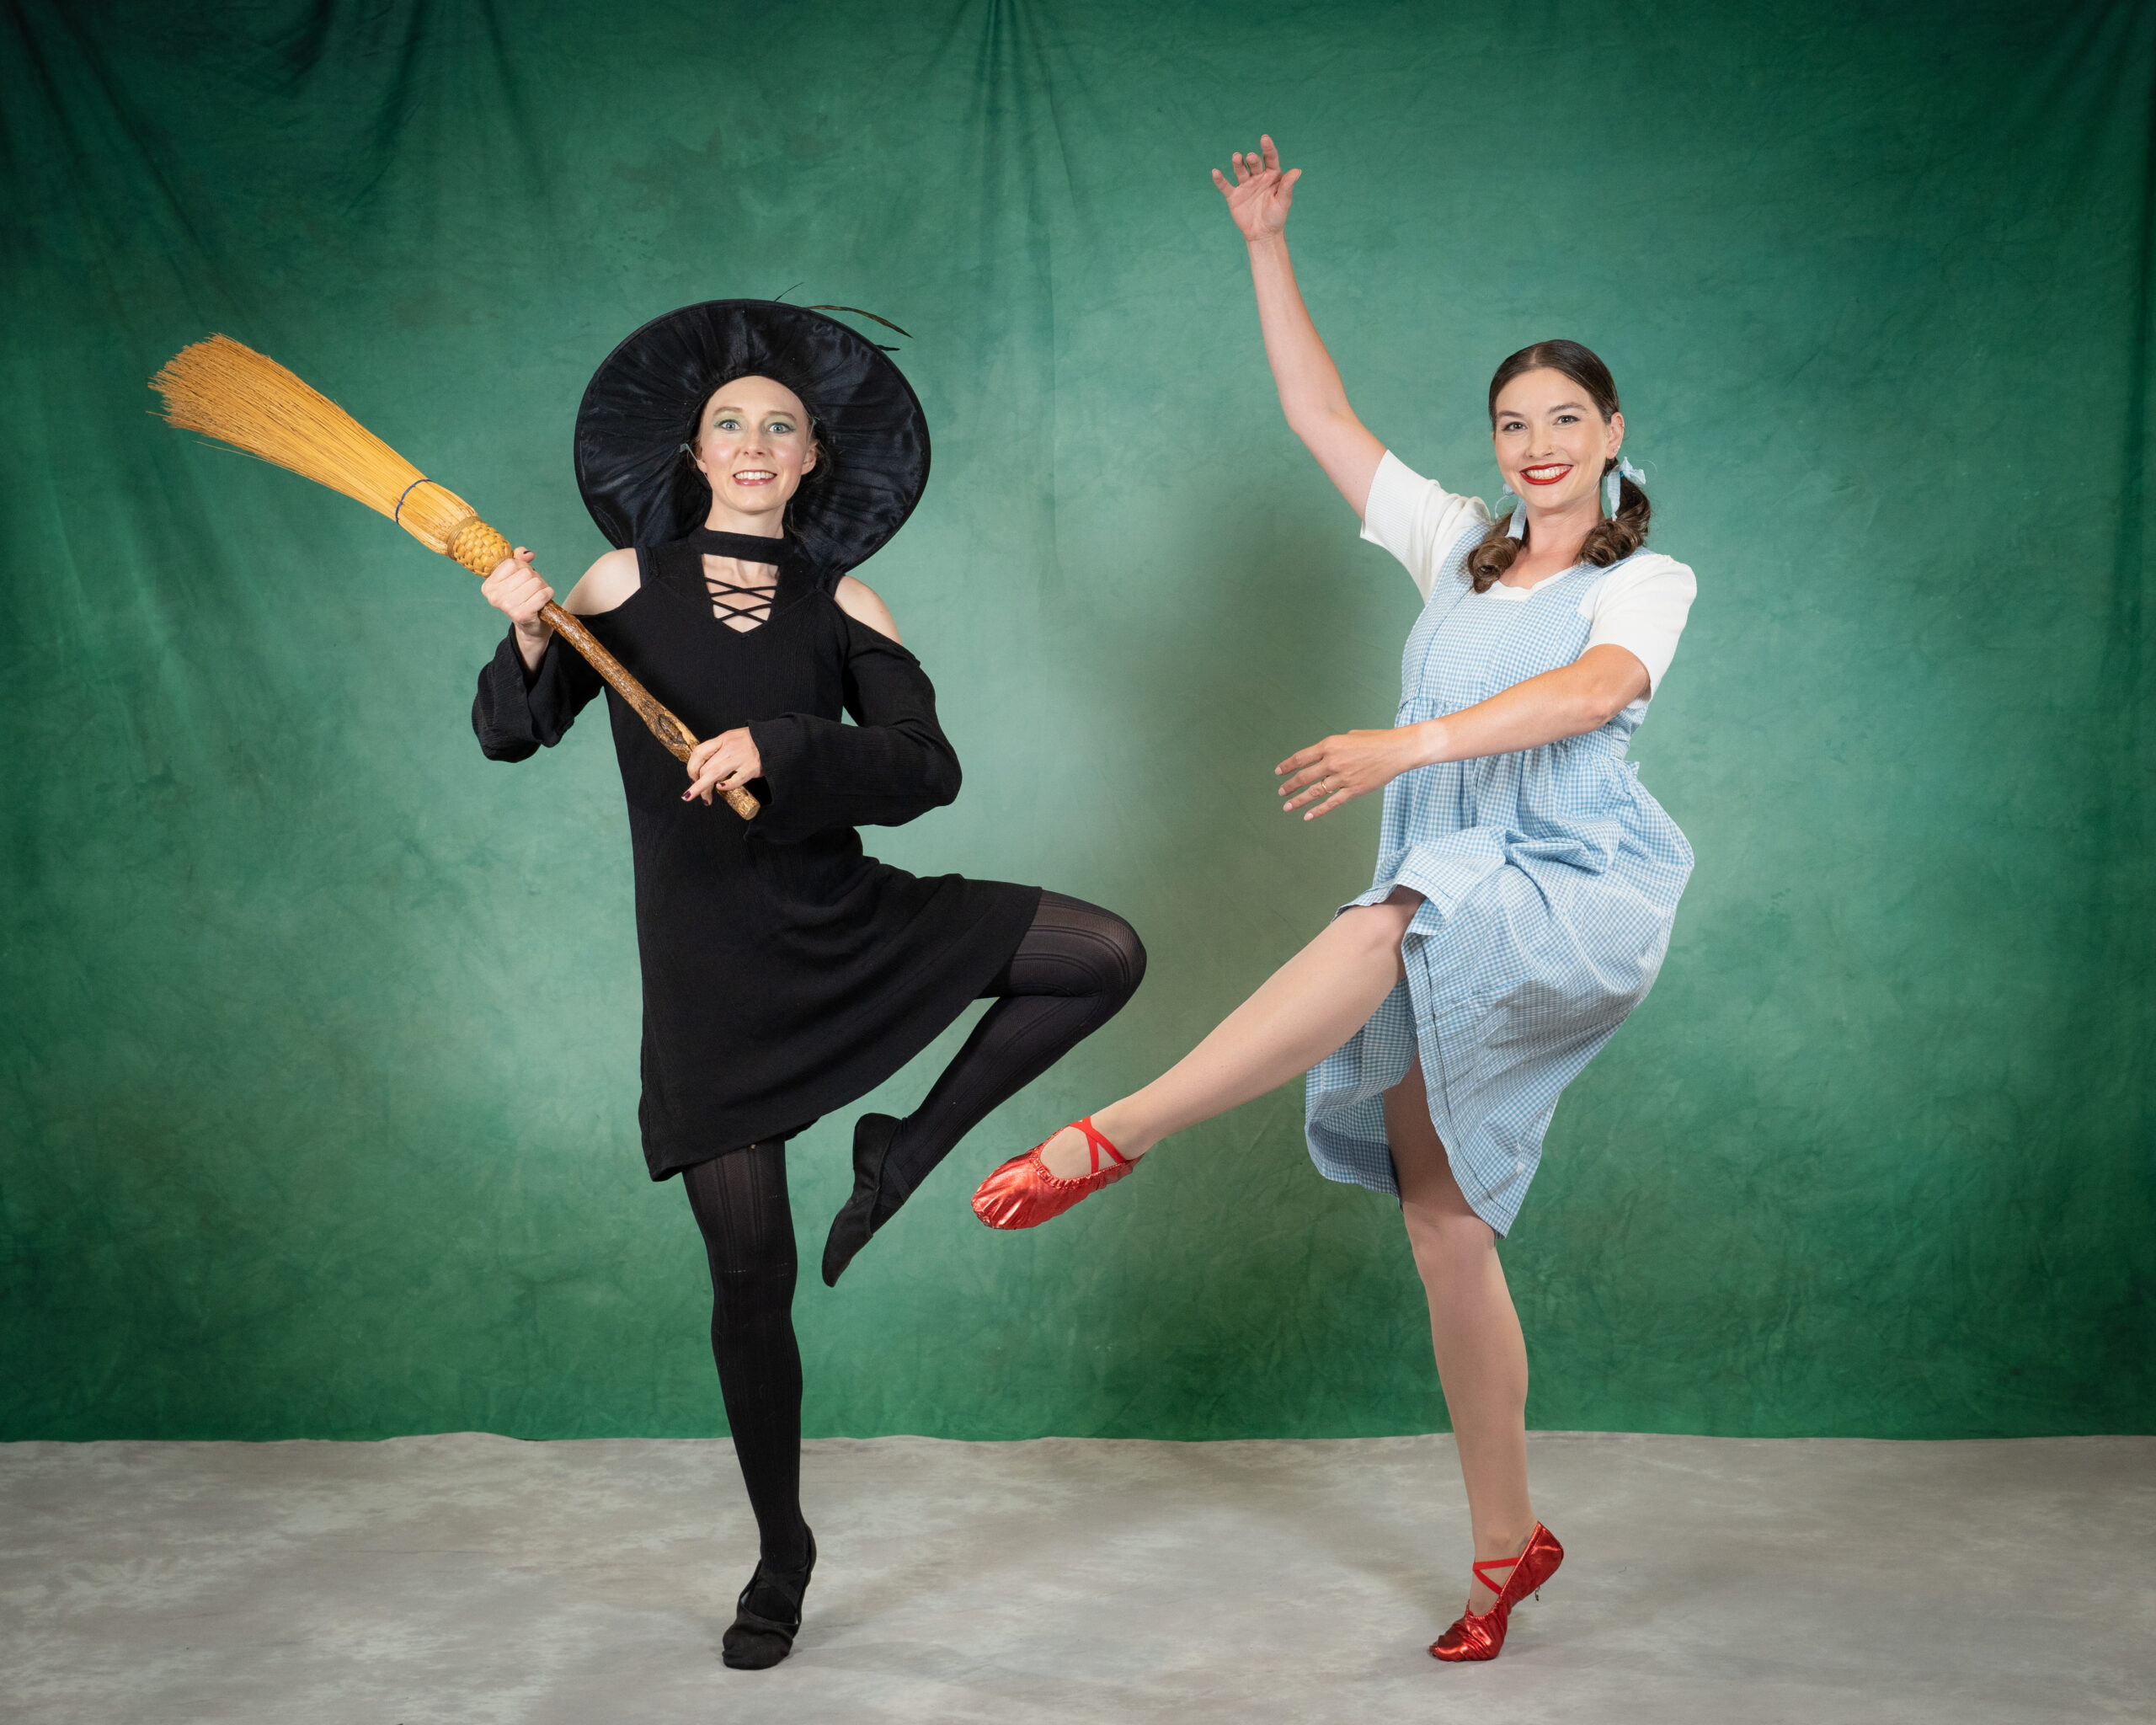 adult dancers in dorothy and wicked witch costumes